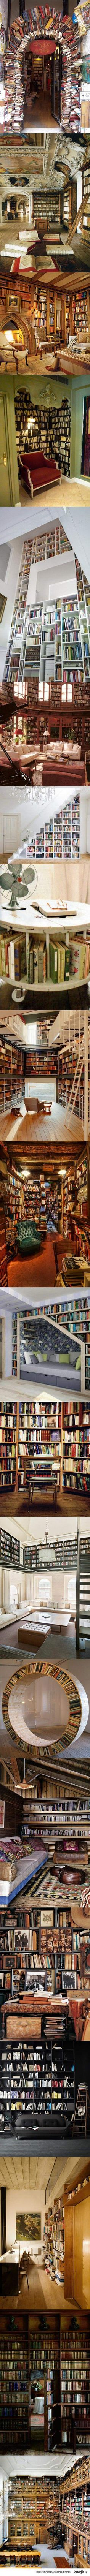 Amazing bookcases and Libraries